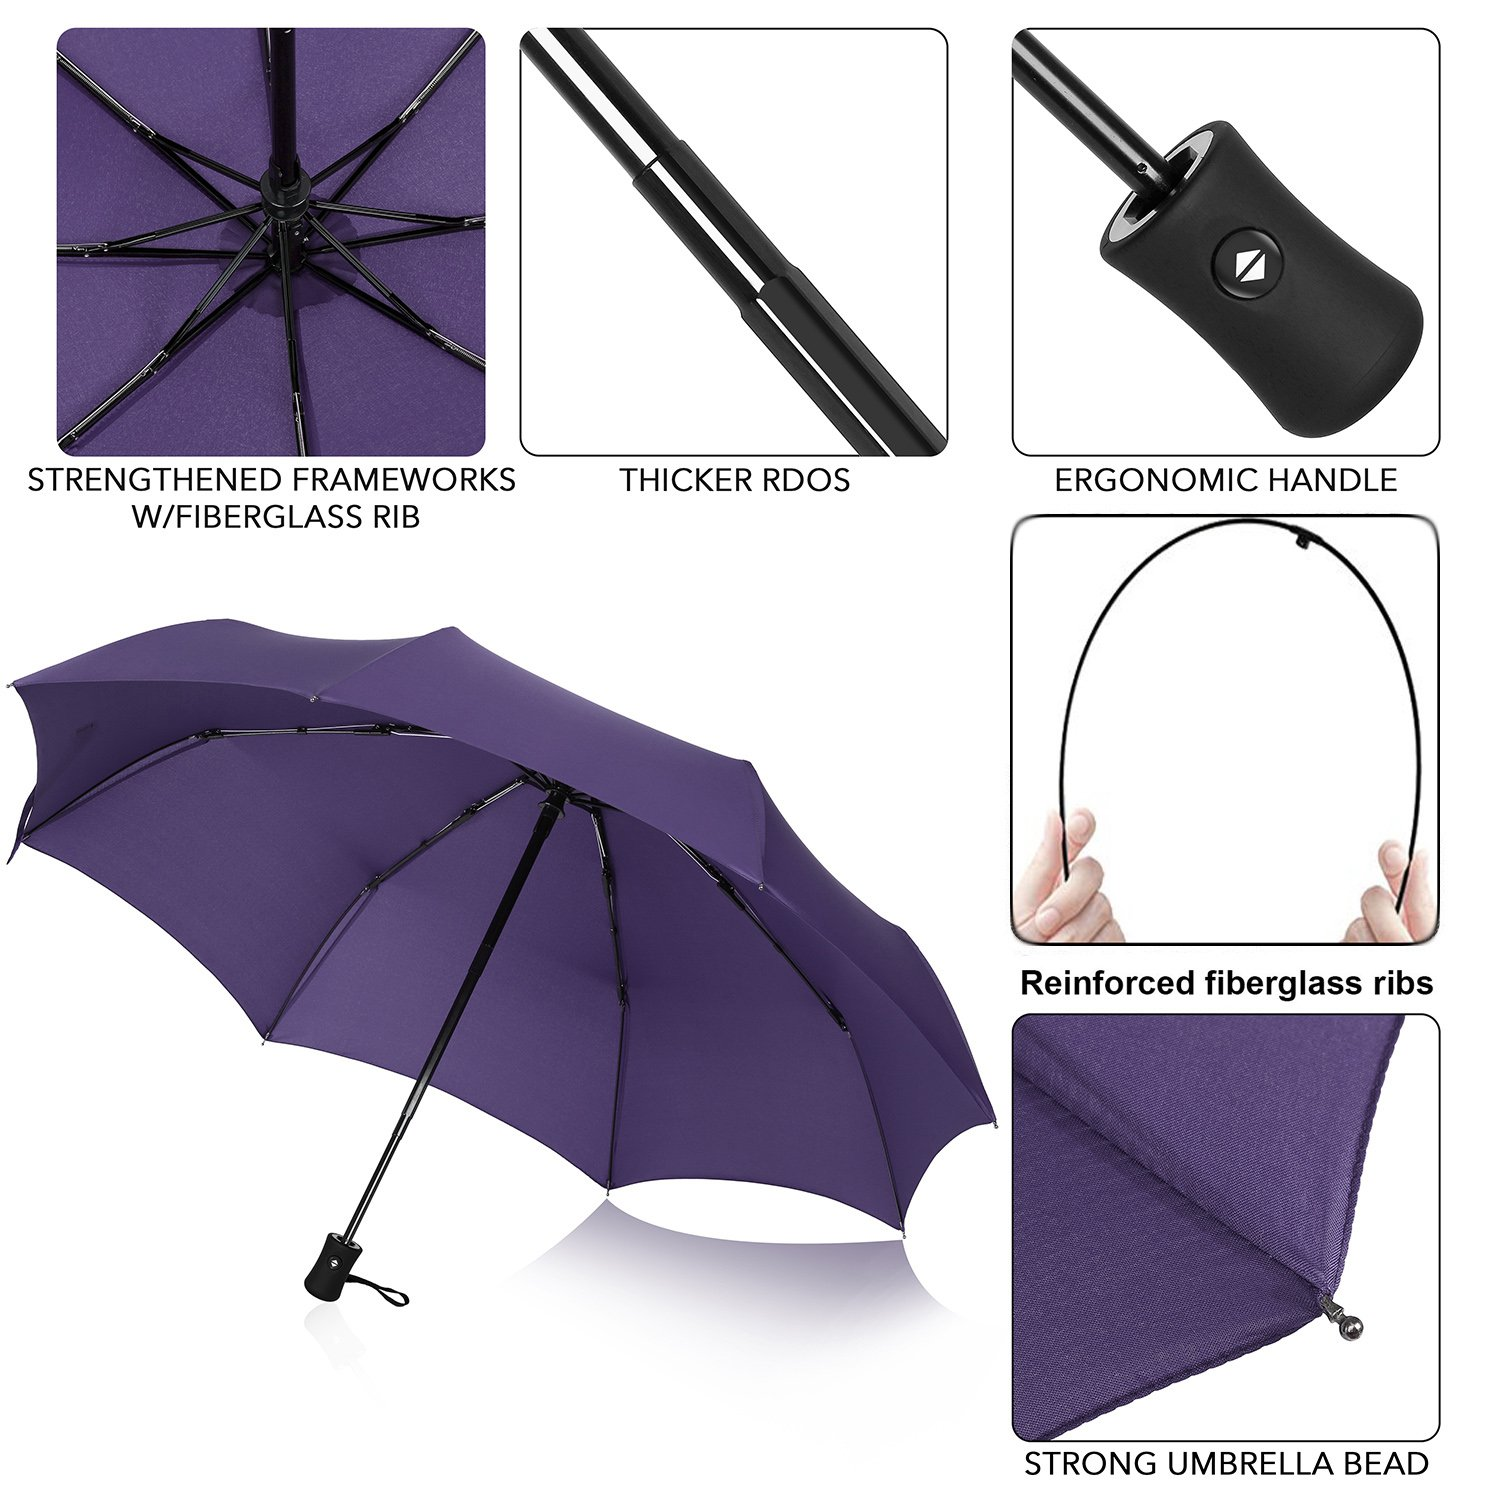 QHUMO Compact Travel Umbrella Windproof, Auto Open Close Umbrellas for Women Men by QHUMO (Image #4)